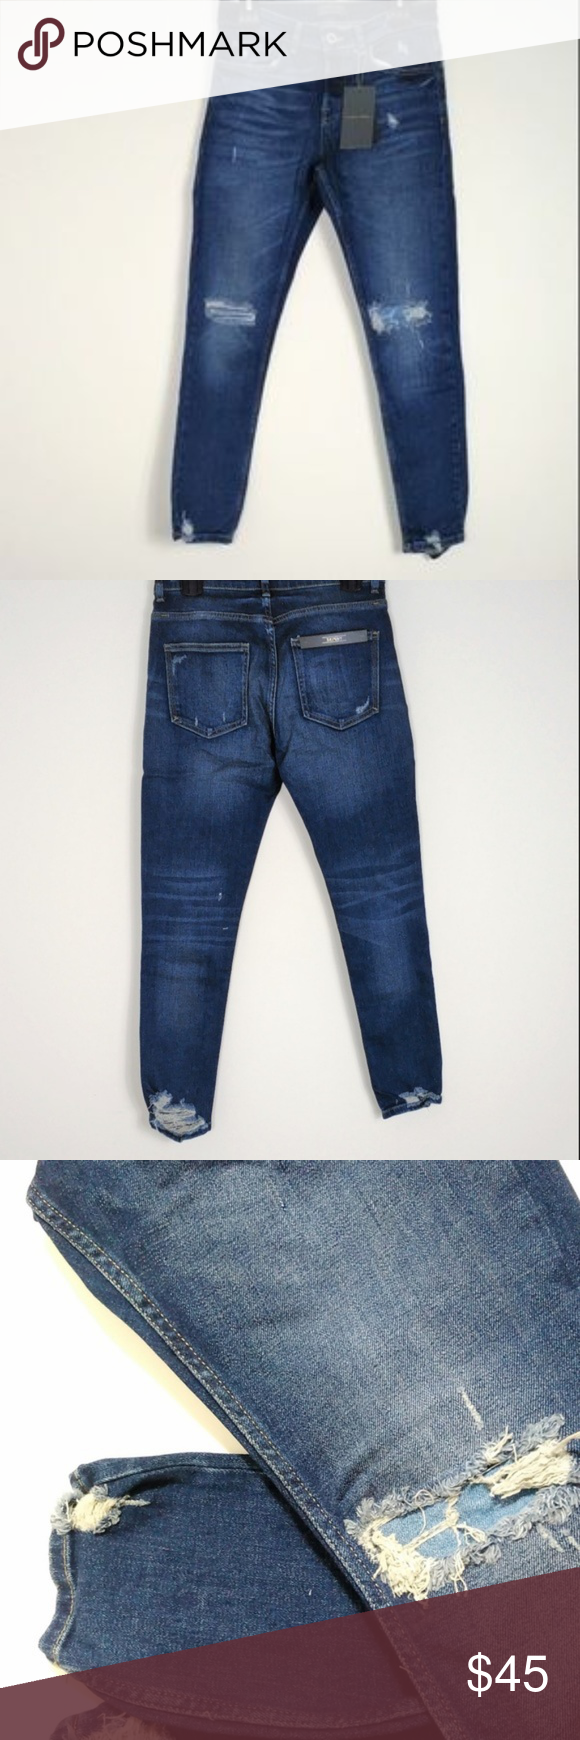 e50c6e4d8a9 NWT ZARA MAN Distressed Skinny Denim Jeans Sz34 Brand New ZARA Men's skinny  leg denim jeans with factory distress and destroyed style. Factory holes at  ...